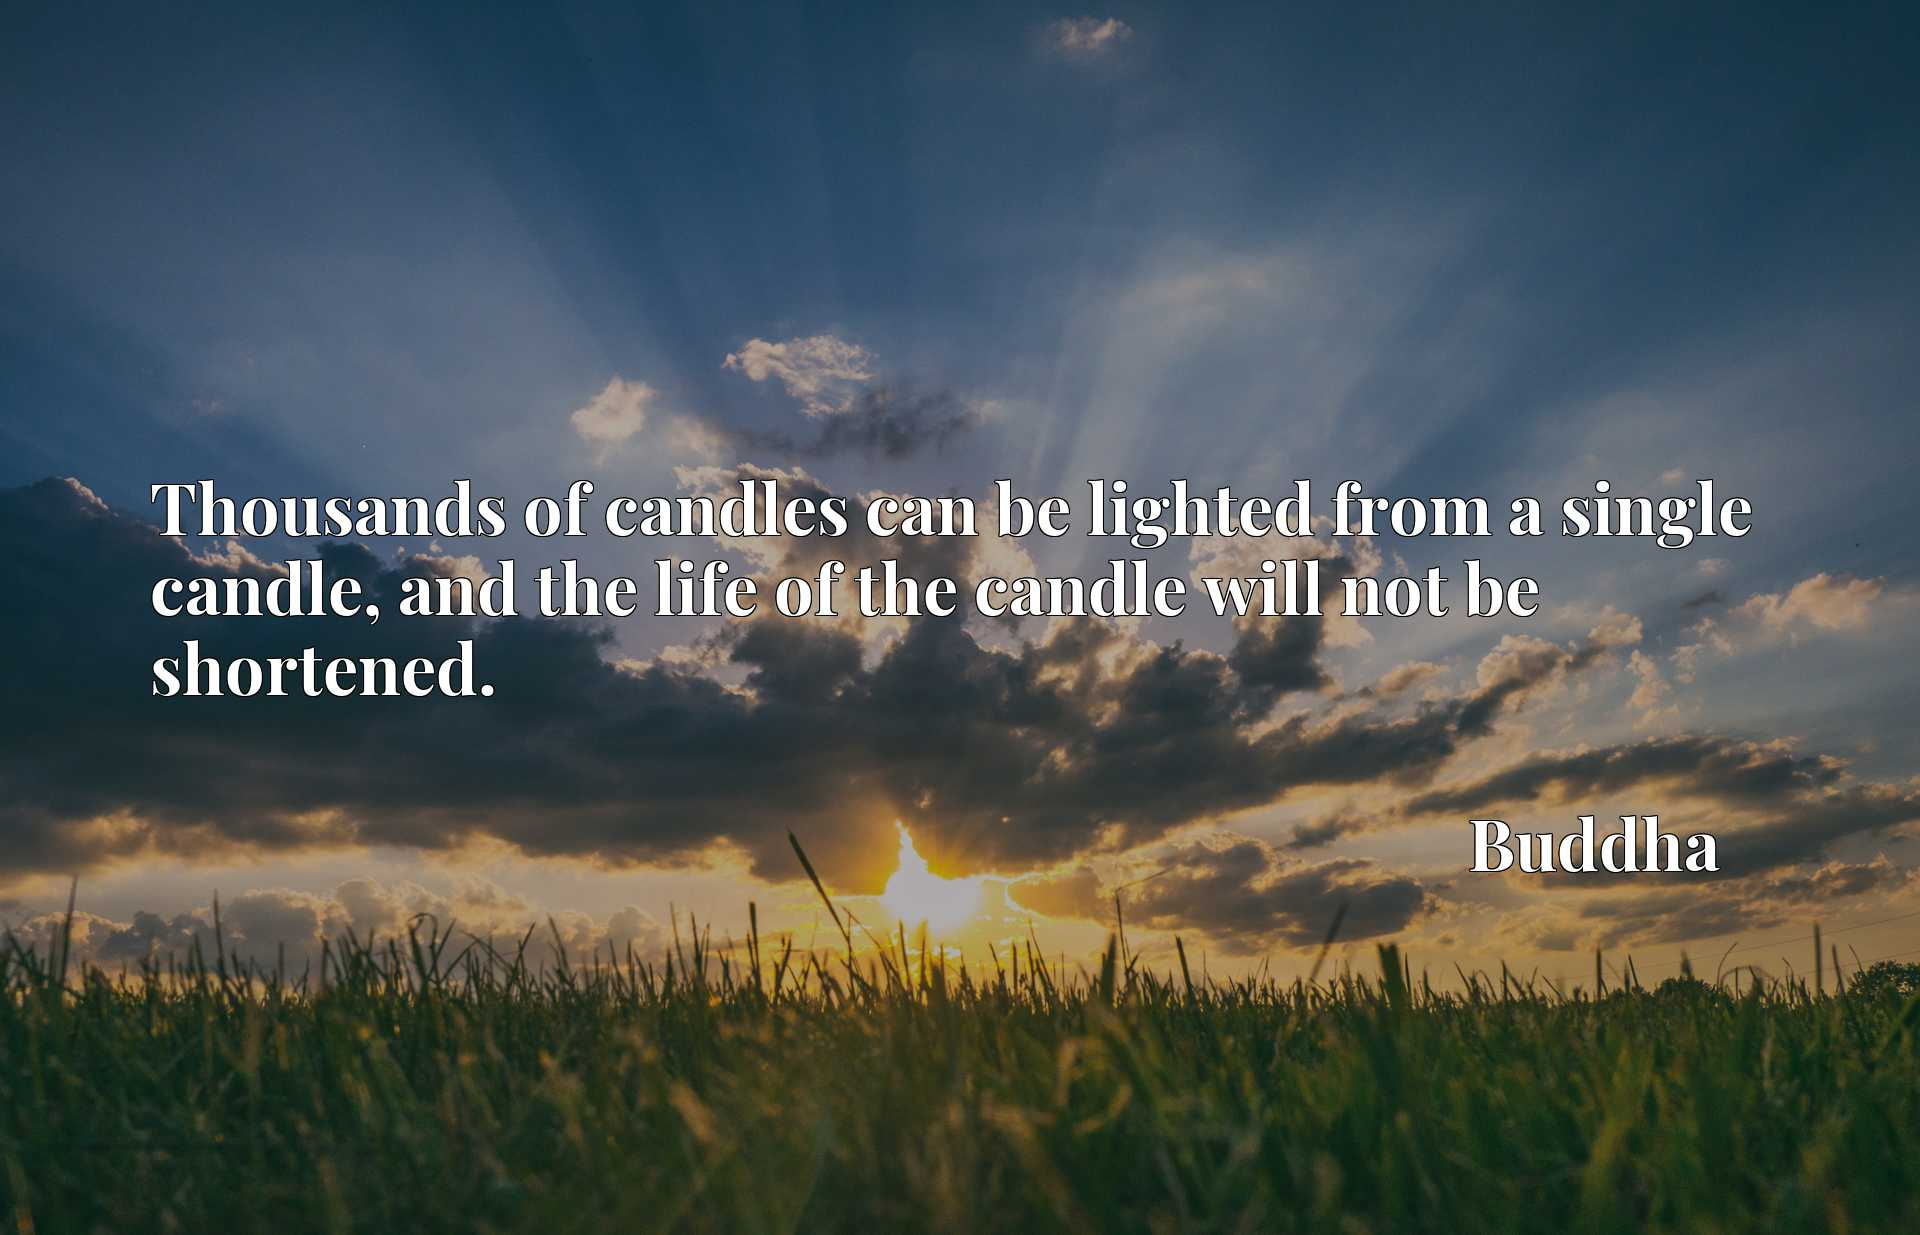 Thousands of candles can be lighted from a single candle, and the life of the candle will not be shortened.